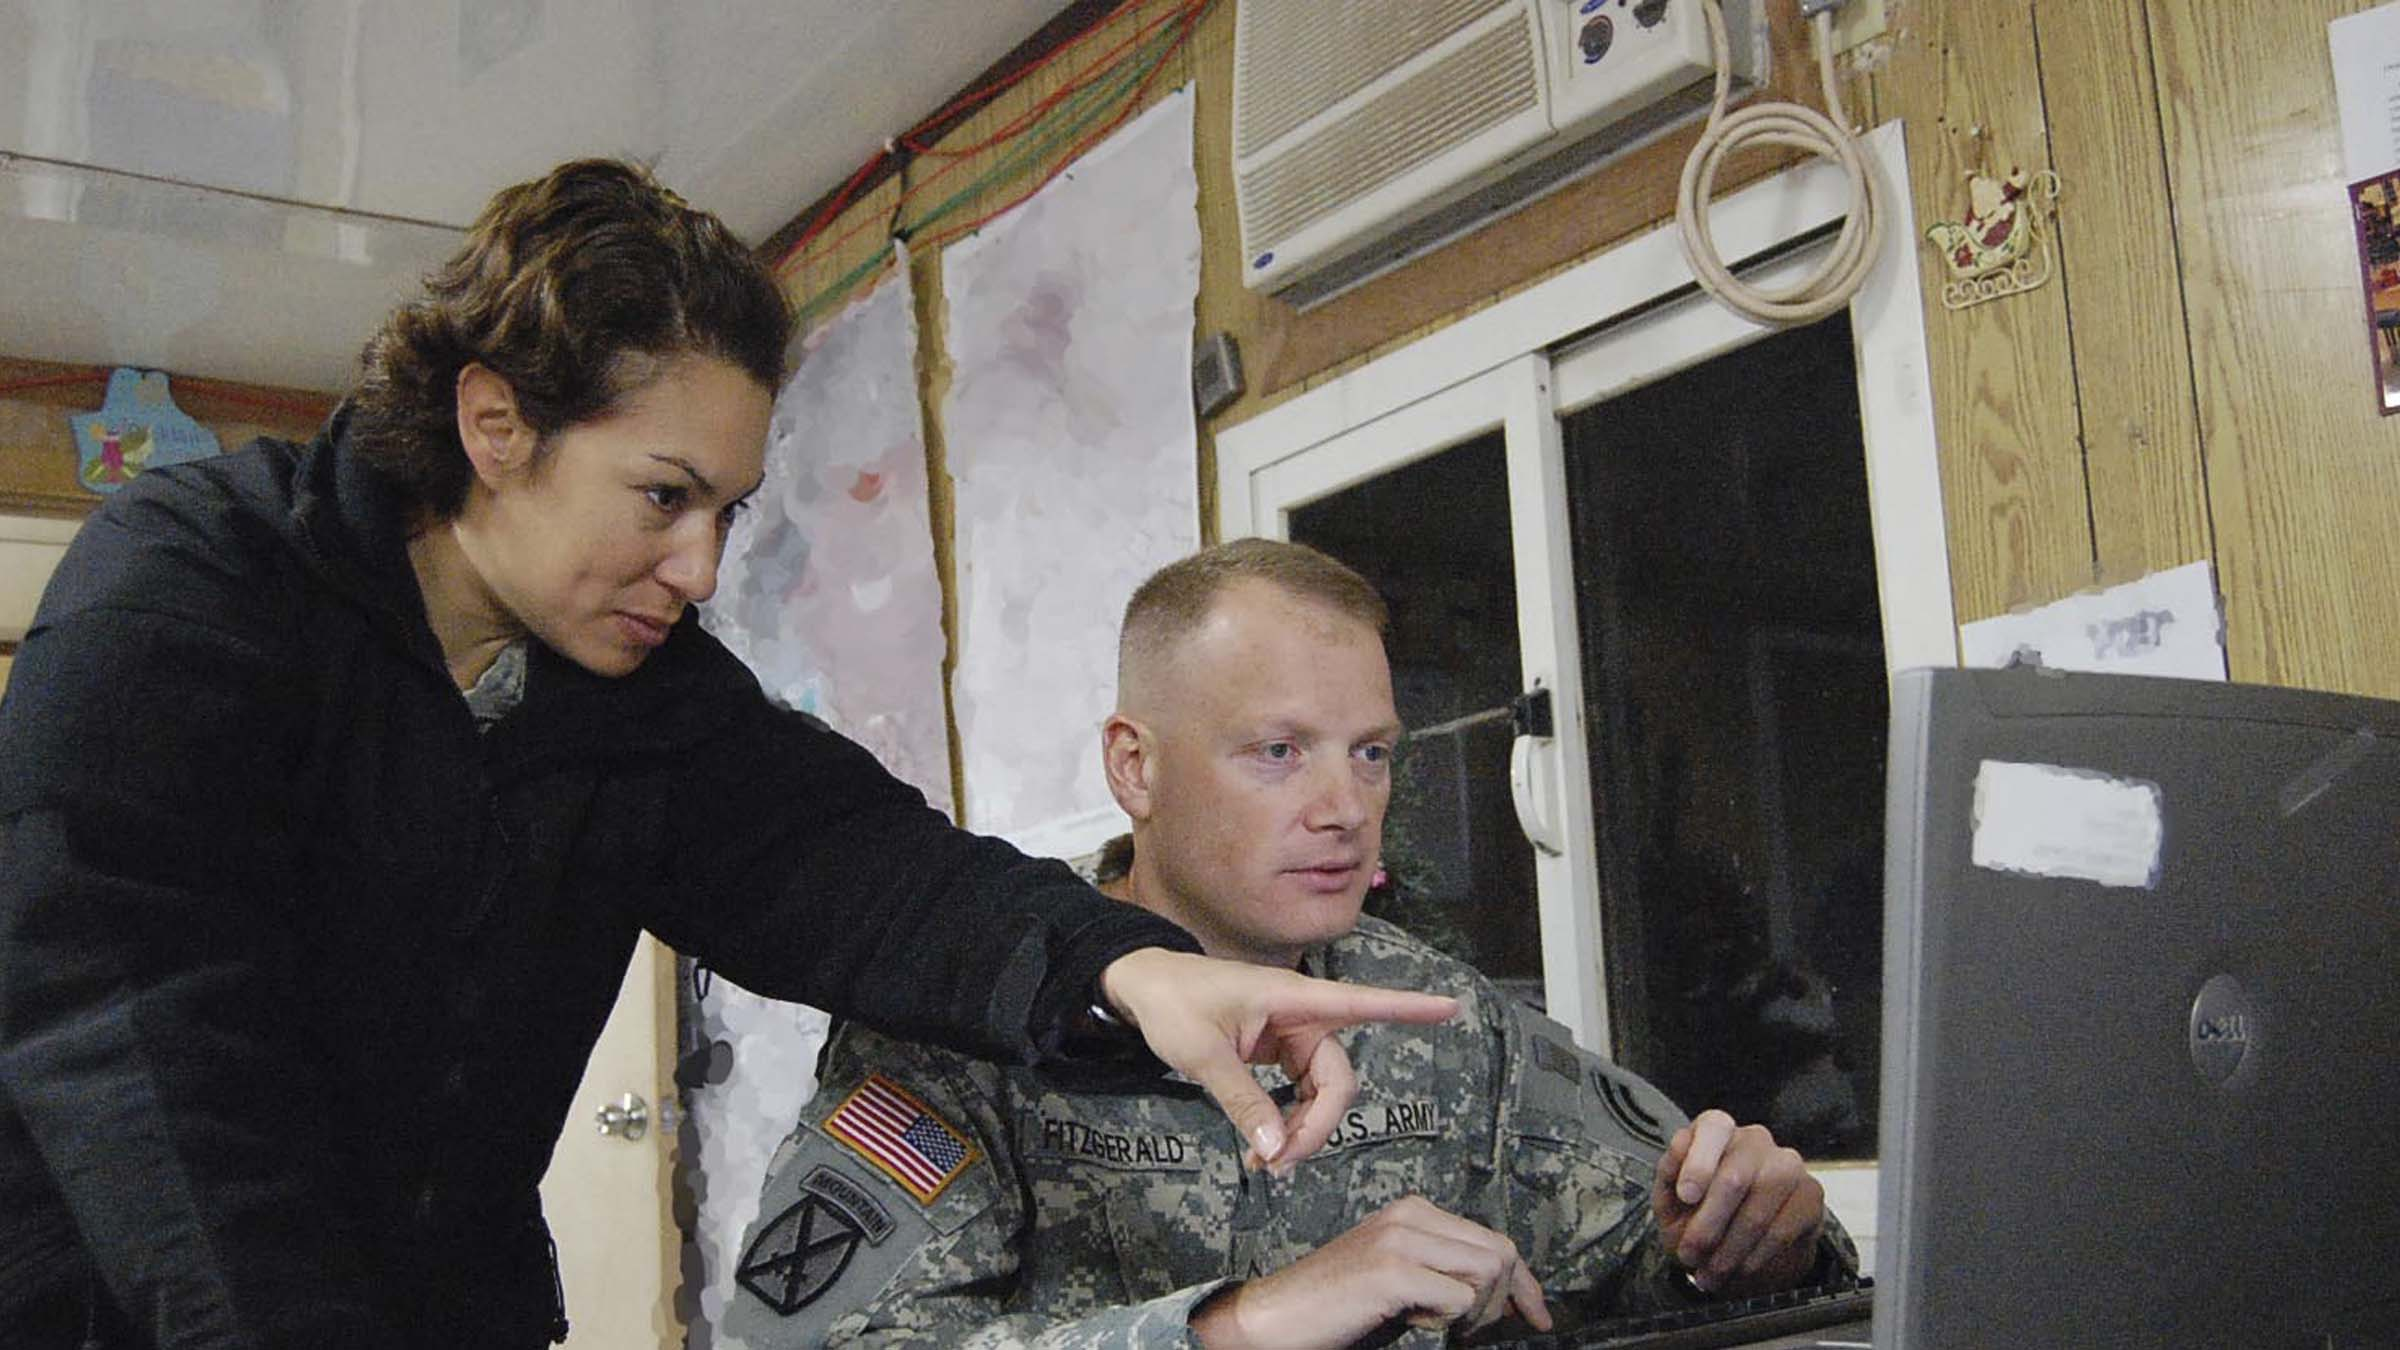 Woman and service member look at computer